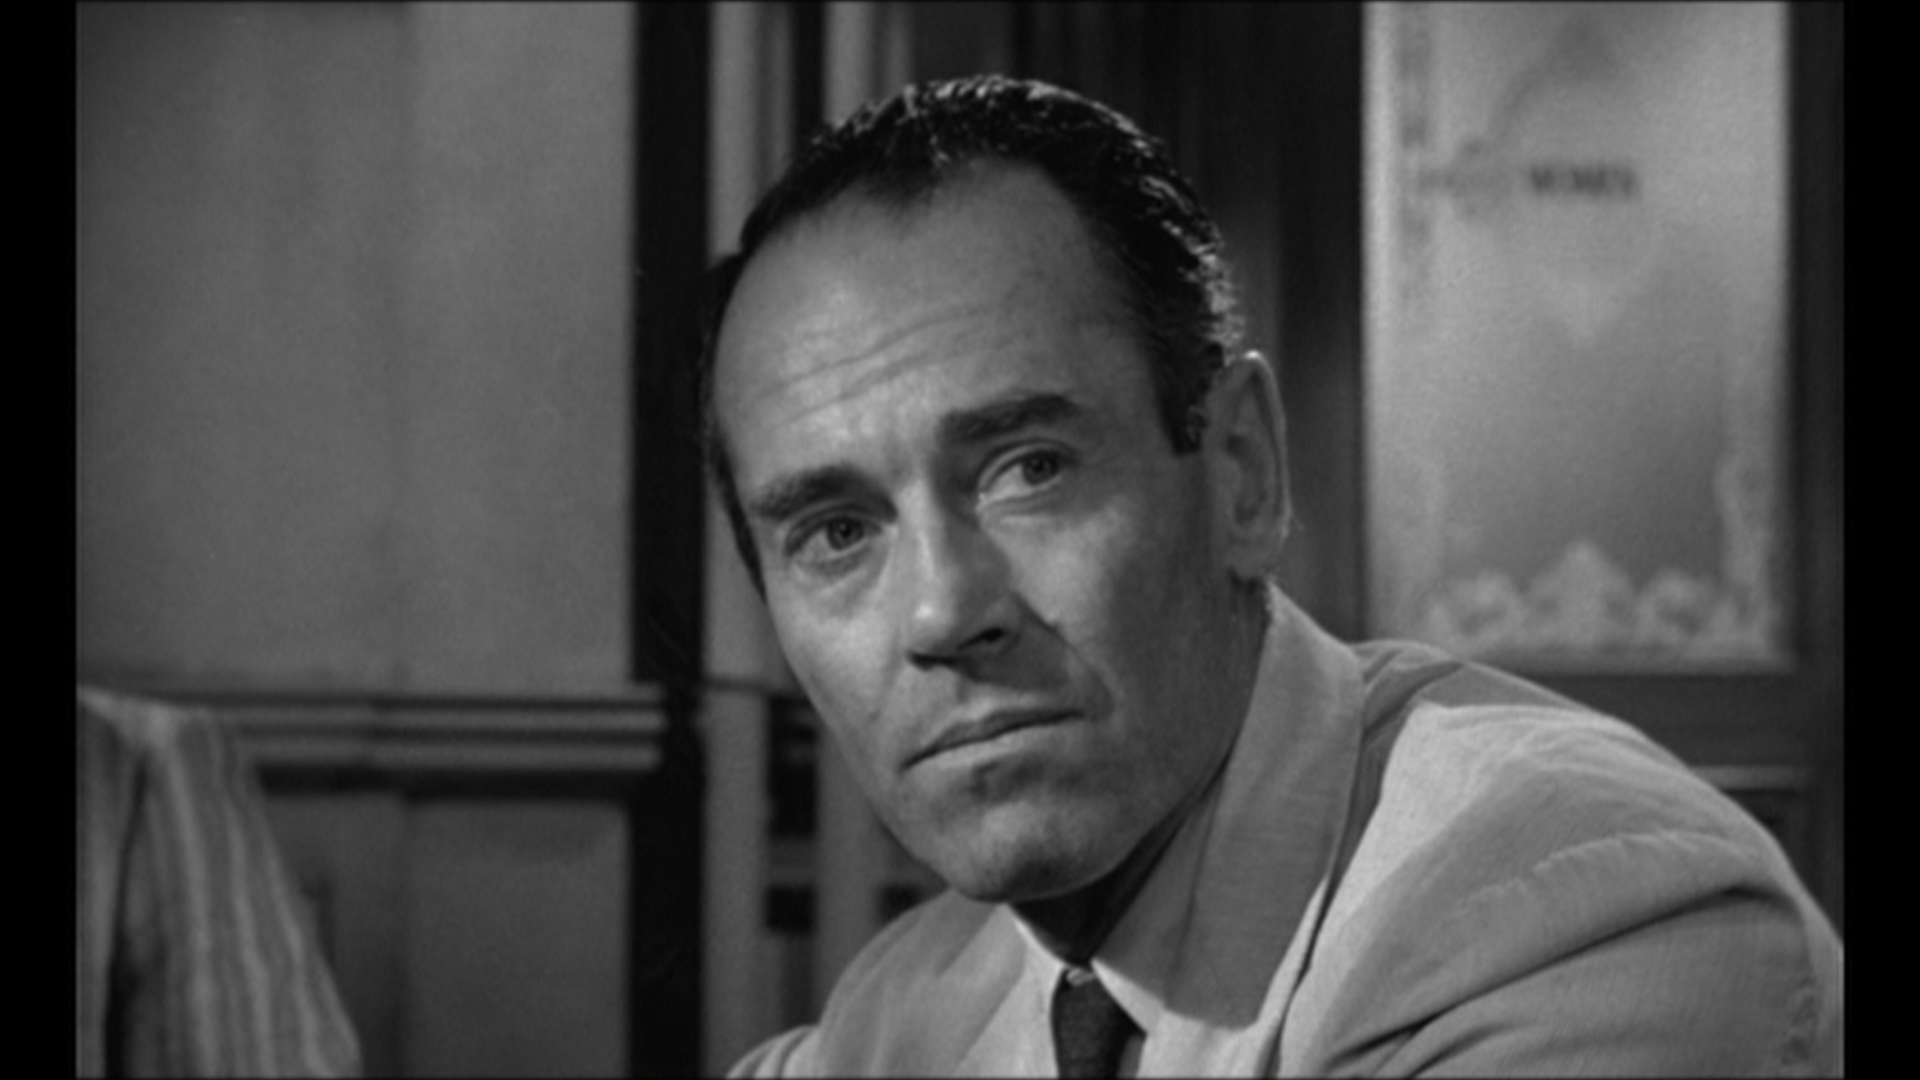 12 angry men summary Complete plot summary of 12 angry men, written by specialists and reviewed by  film experts.